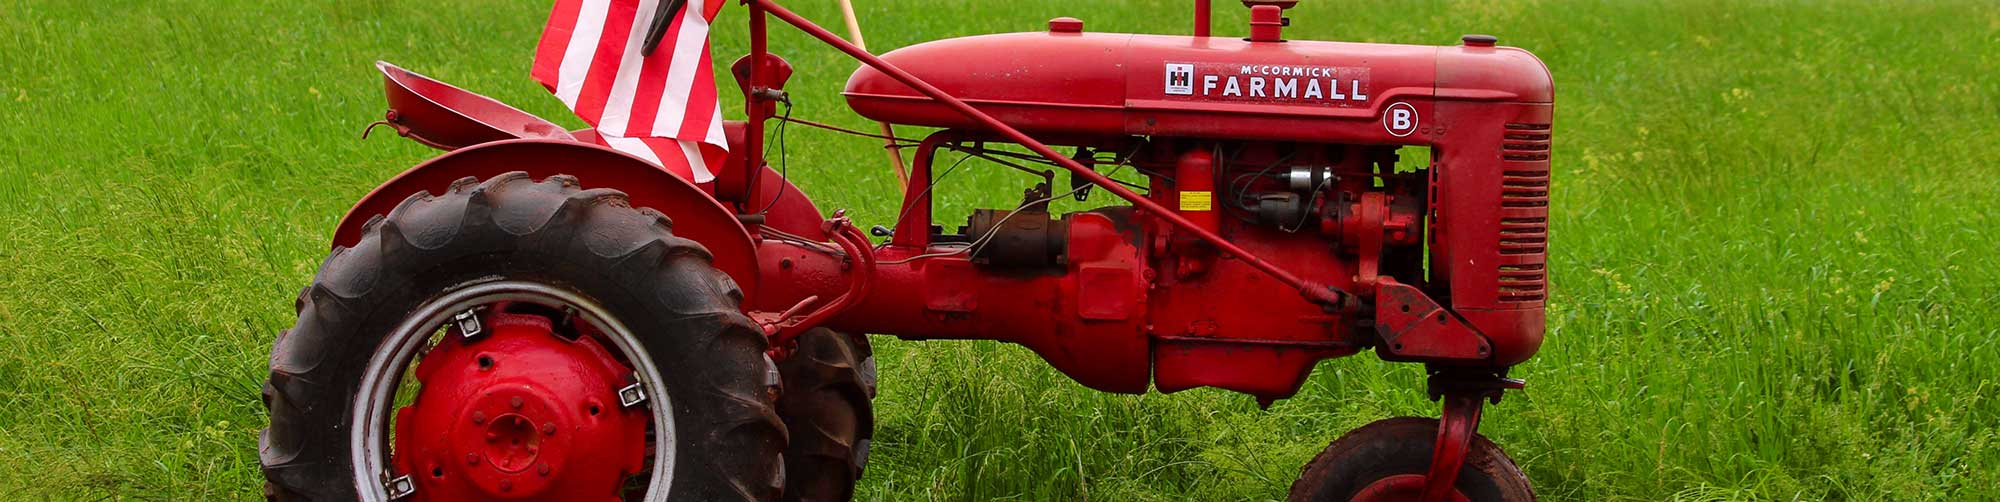 discover central new jersey image of a red tractor in farms